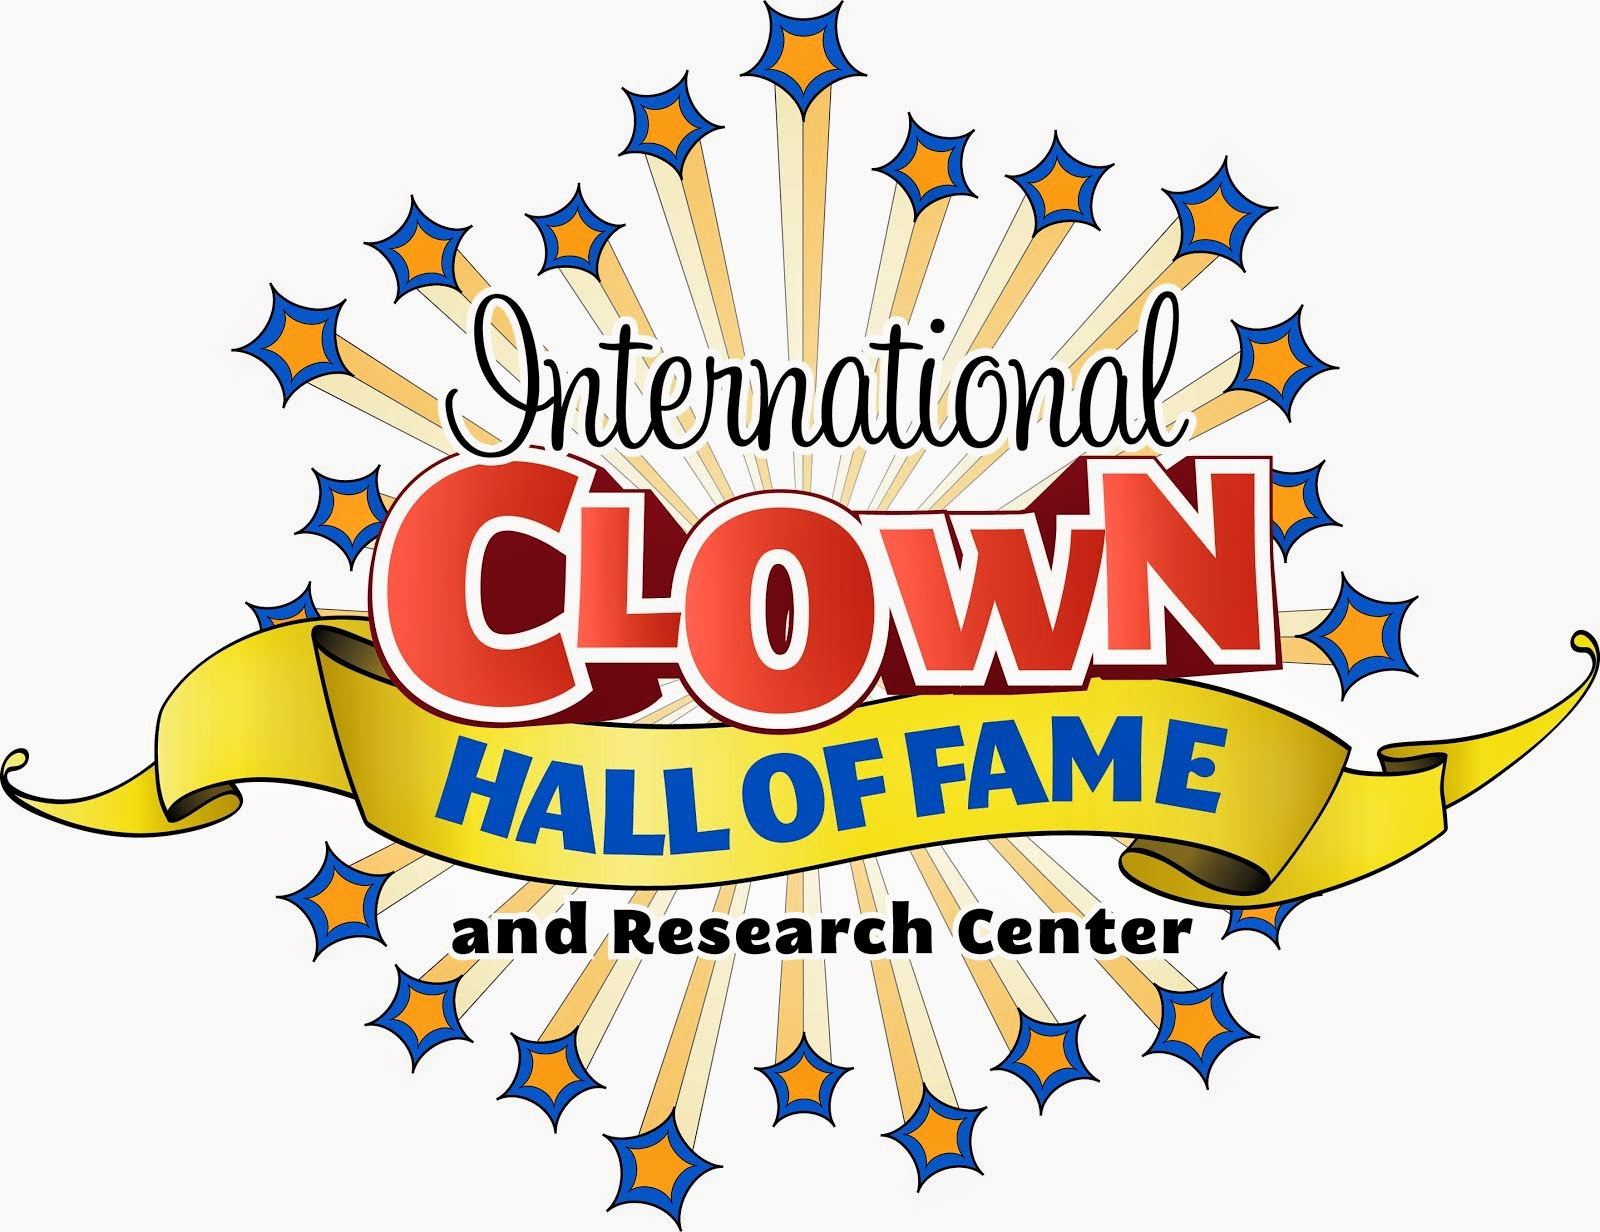 THE INTERNATIONAL CLOWN HALL OF FAME GIFT SHOP IS NOW OPEN!